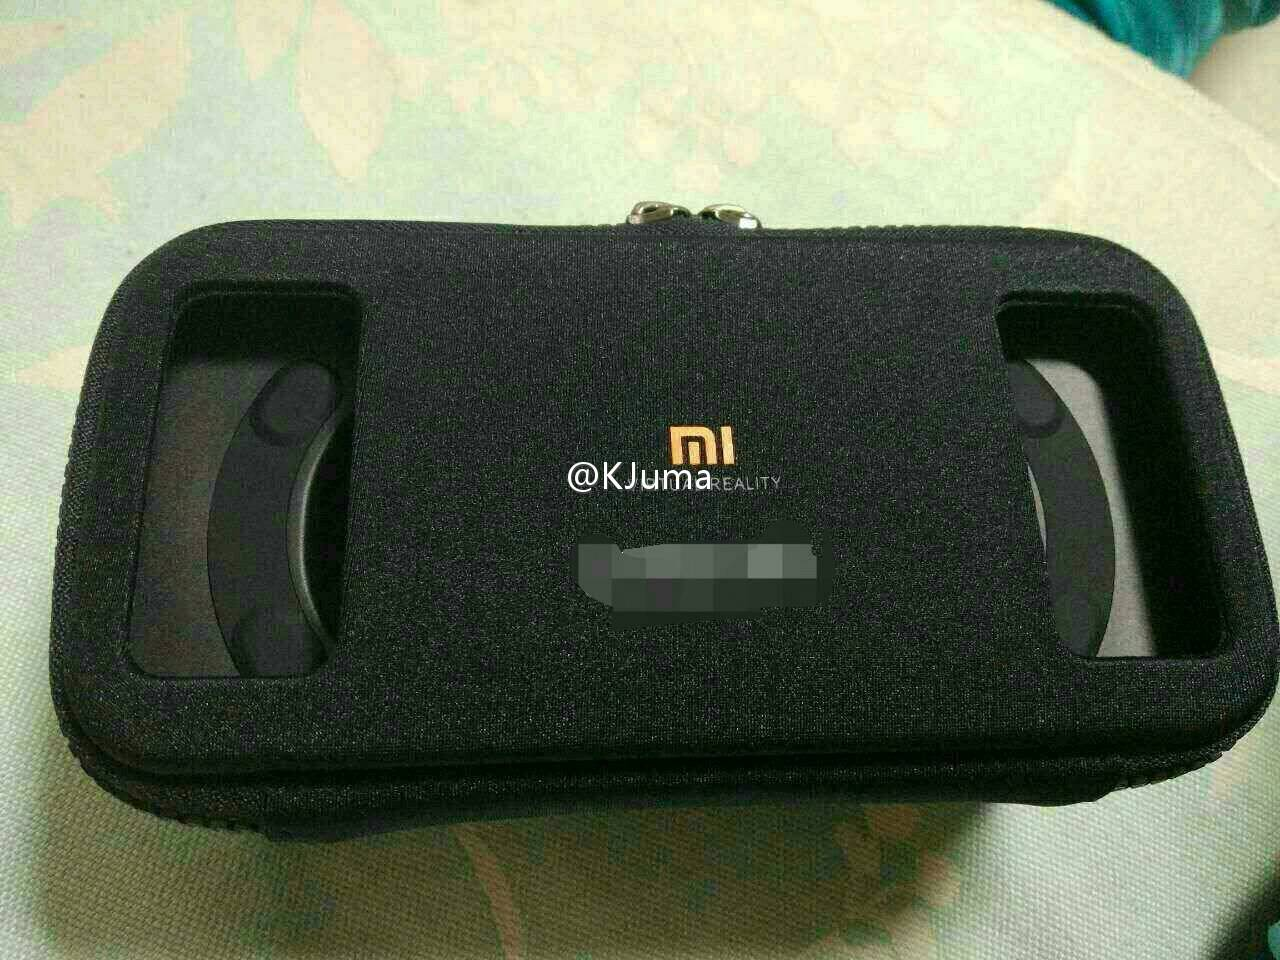 Xiaomi VR Headset leaked image